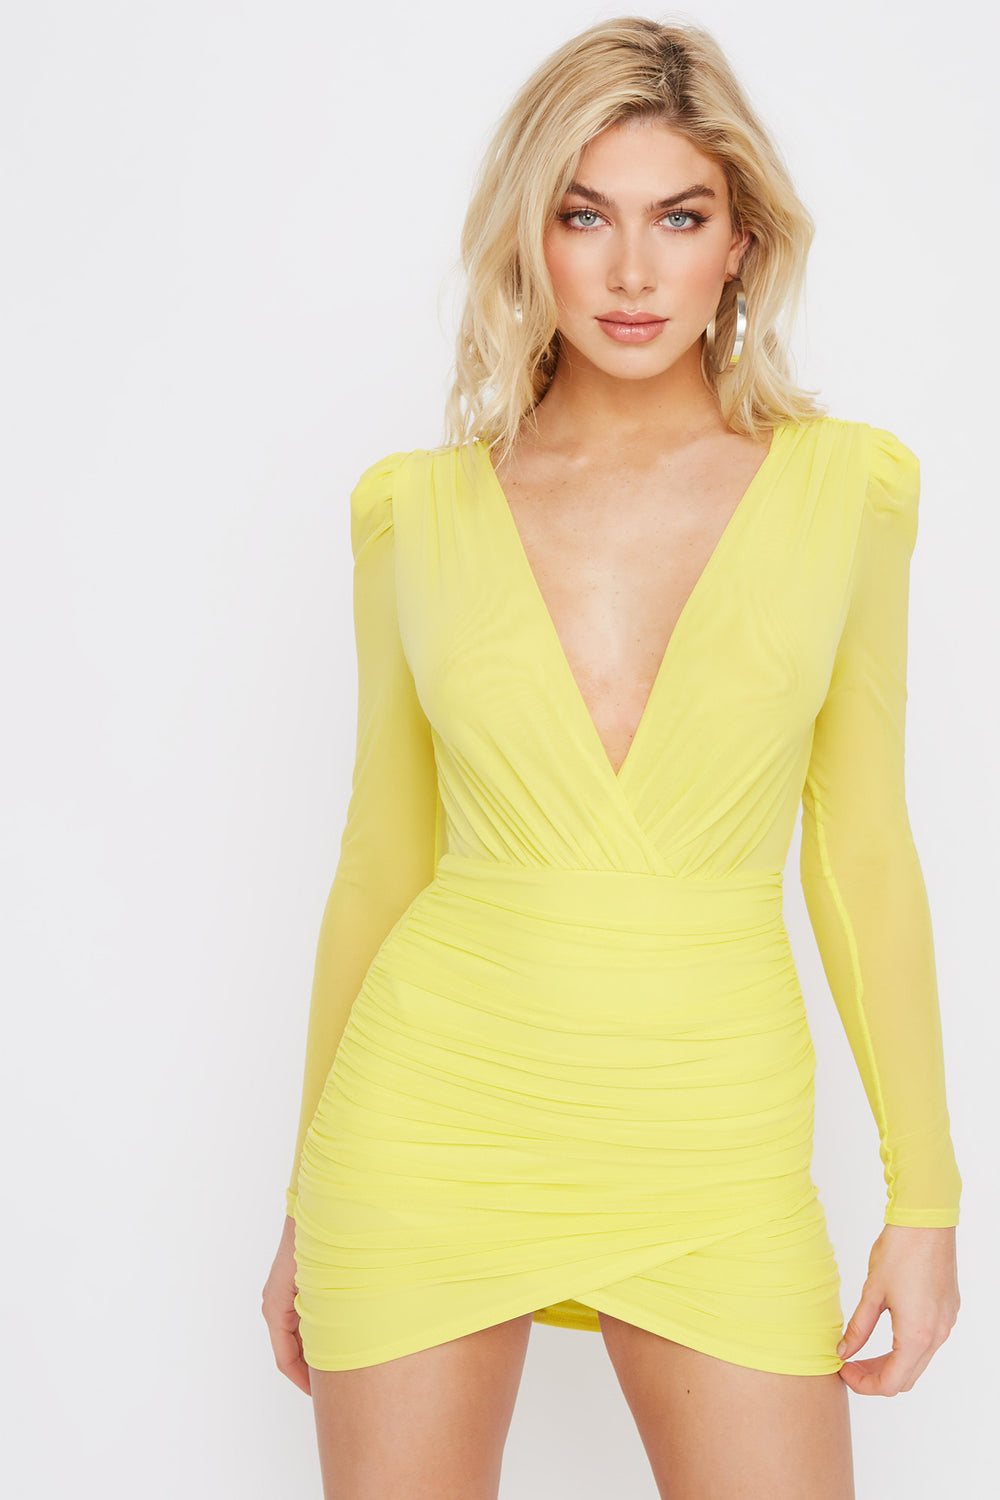 Deep V-Neck Mesh Ruched Mini Dress Neon Yellow